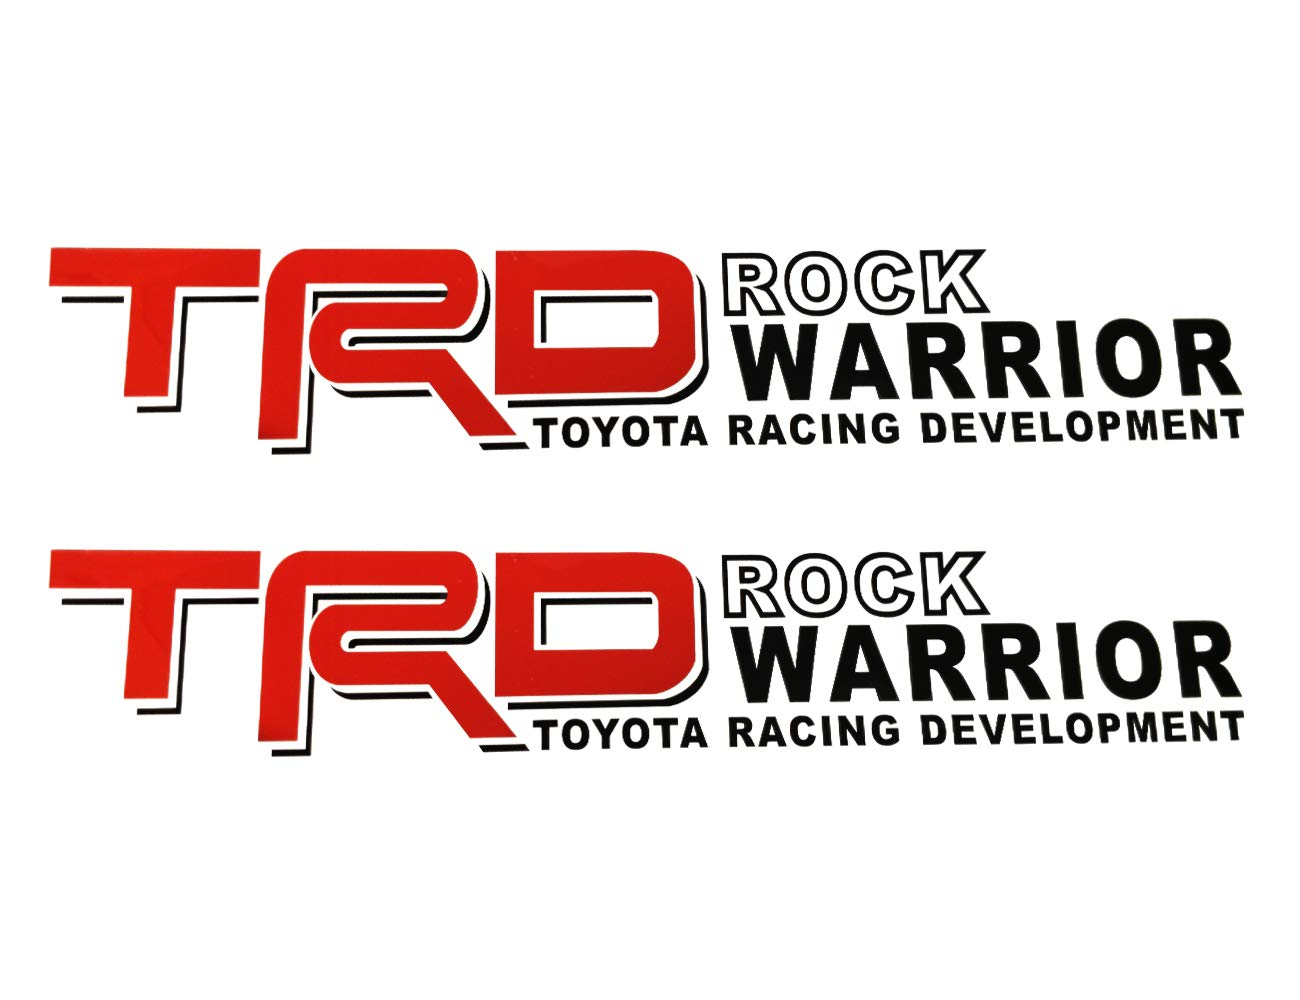 Neumaxx Compatible With TRD Red Die Cut Decals Vinyl Stickers Graphics Letters Toyota Racing Development For Truck Bed Pickup 4x4 Decoration Design ROCK WARRIOR